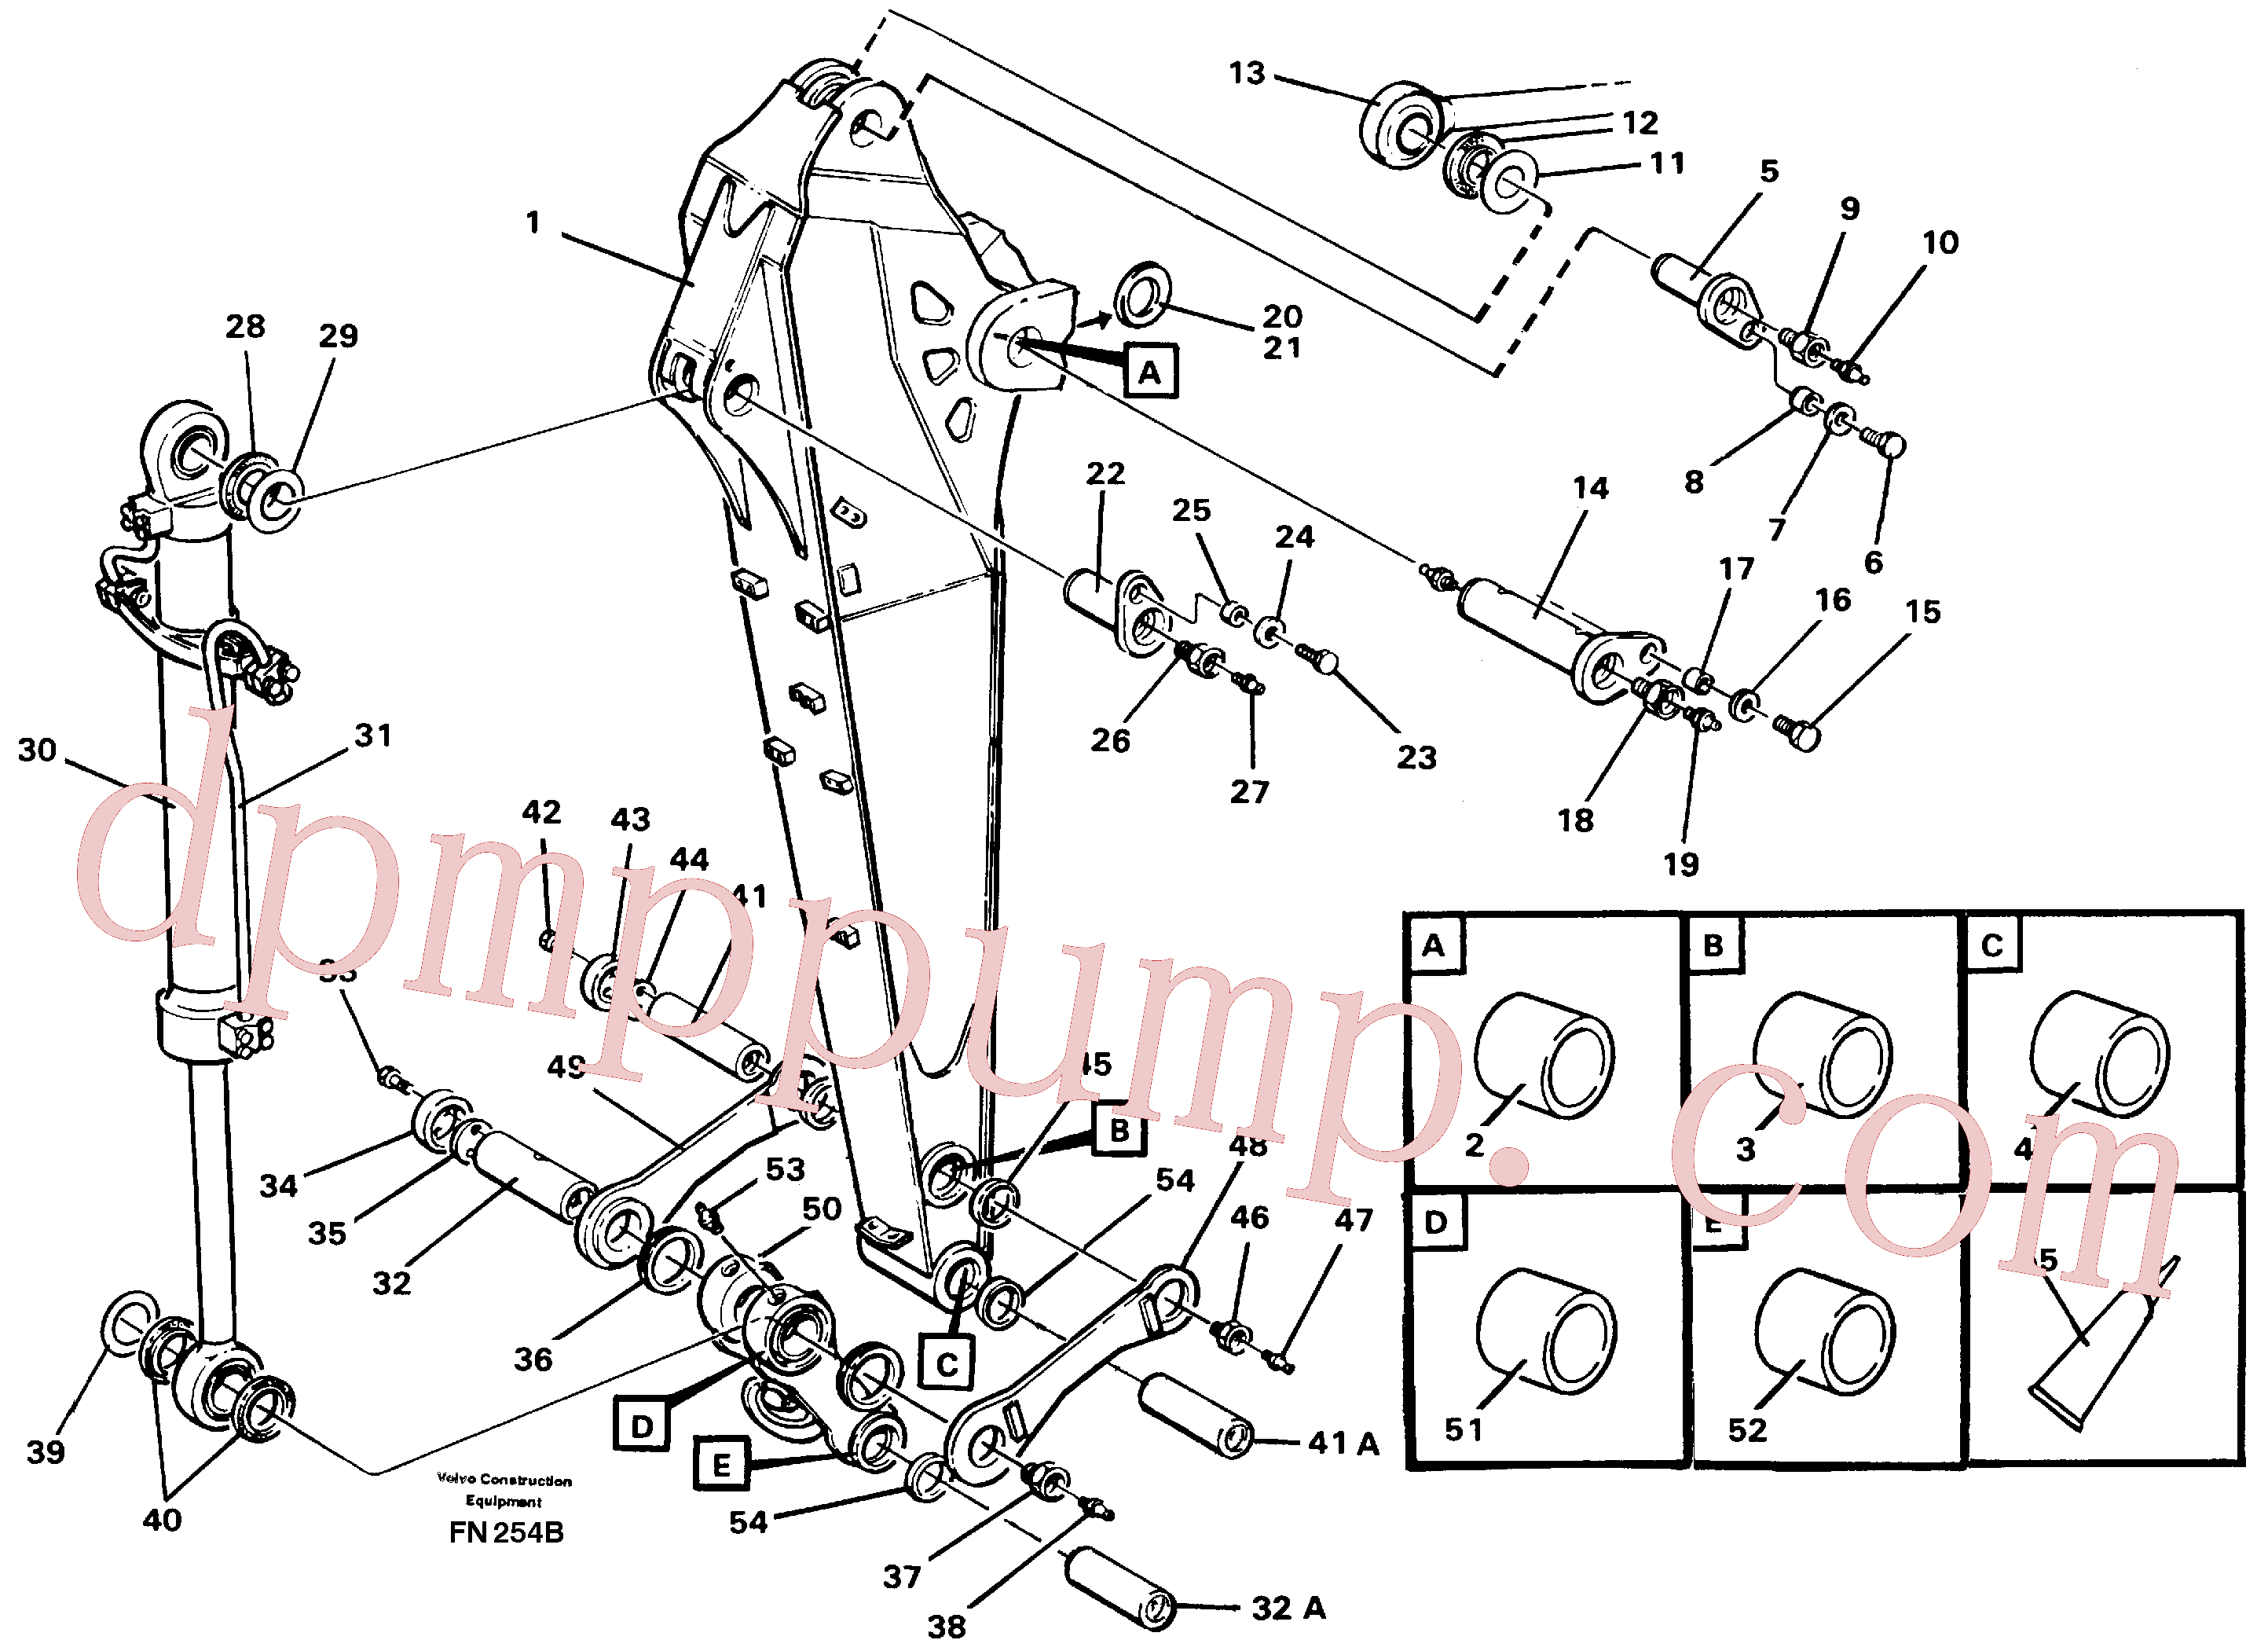 VOE14257176 for Volvo Dipper arm with connections, 2.0 m/2.4 m(FN254B assembly)